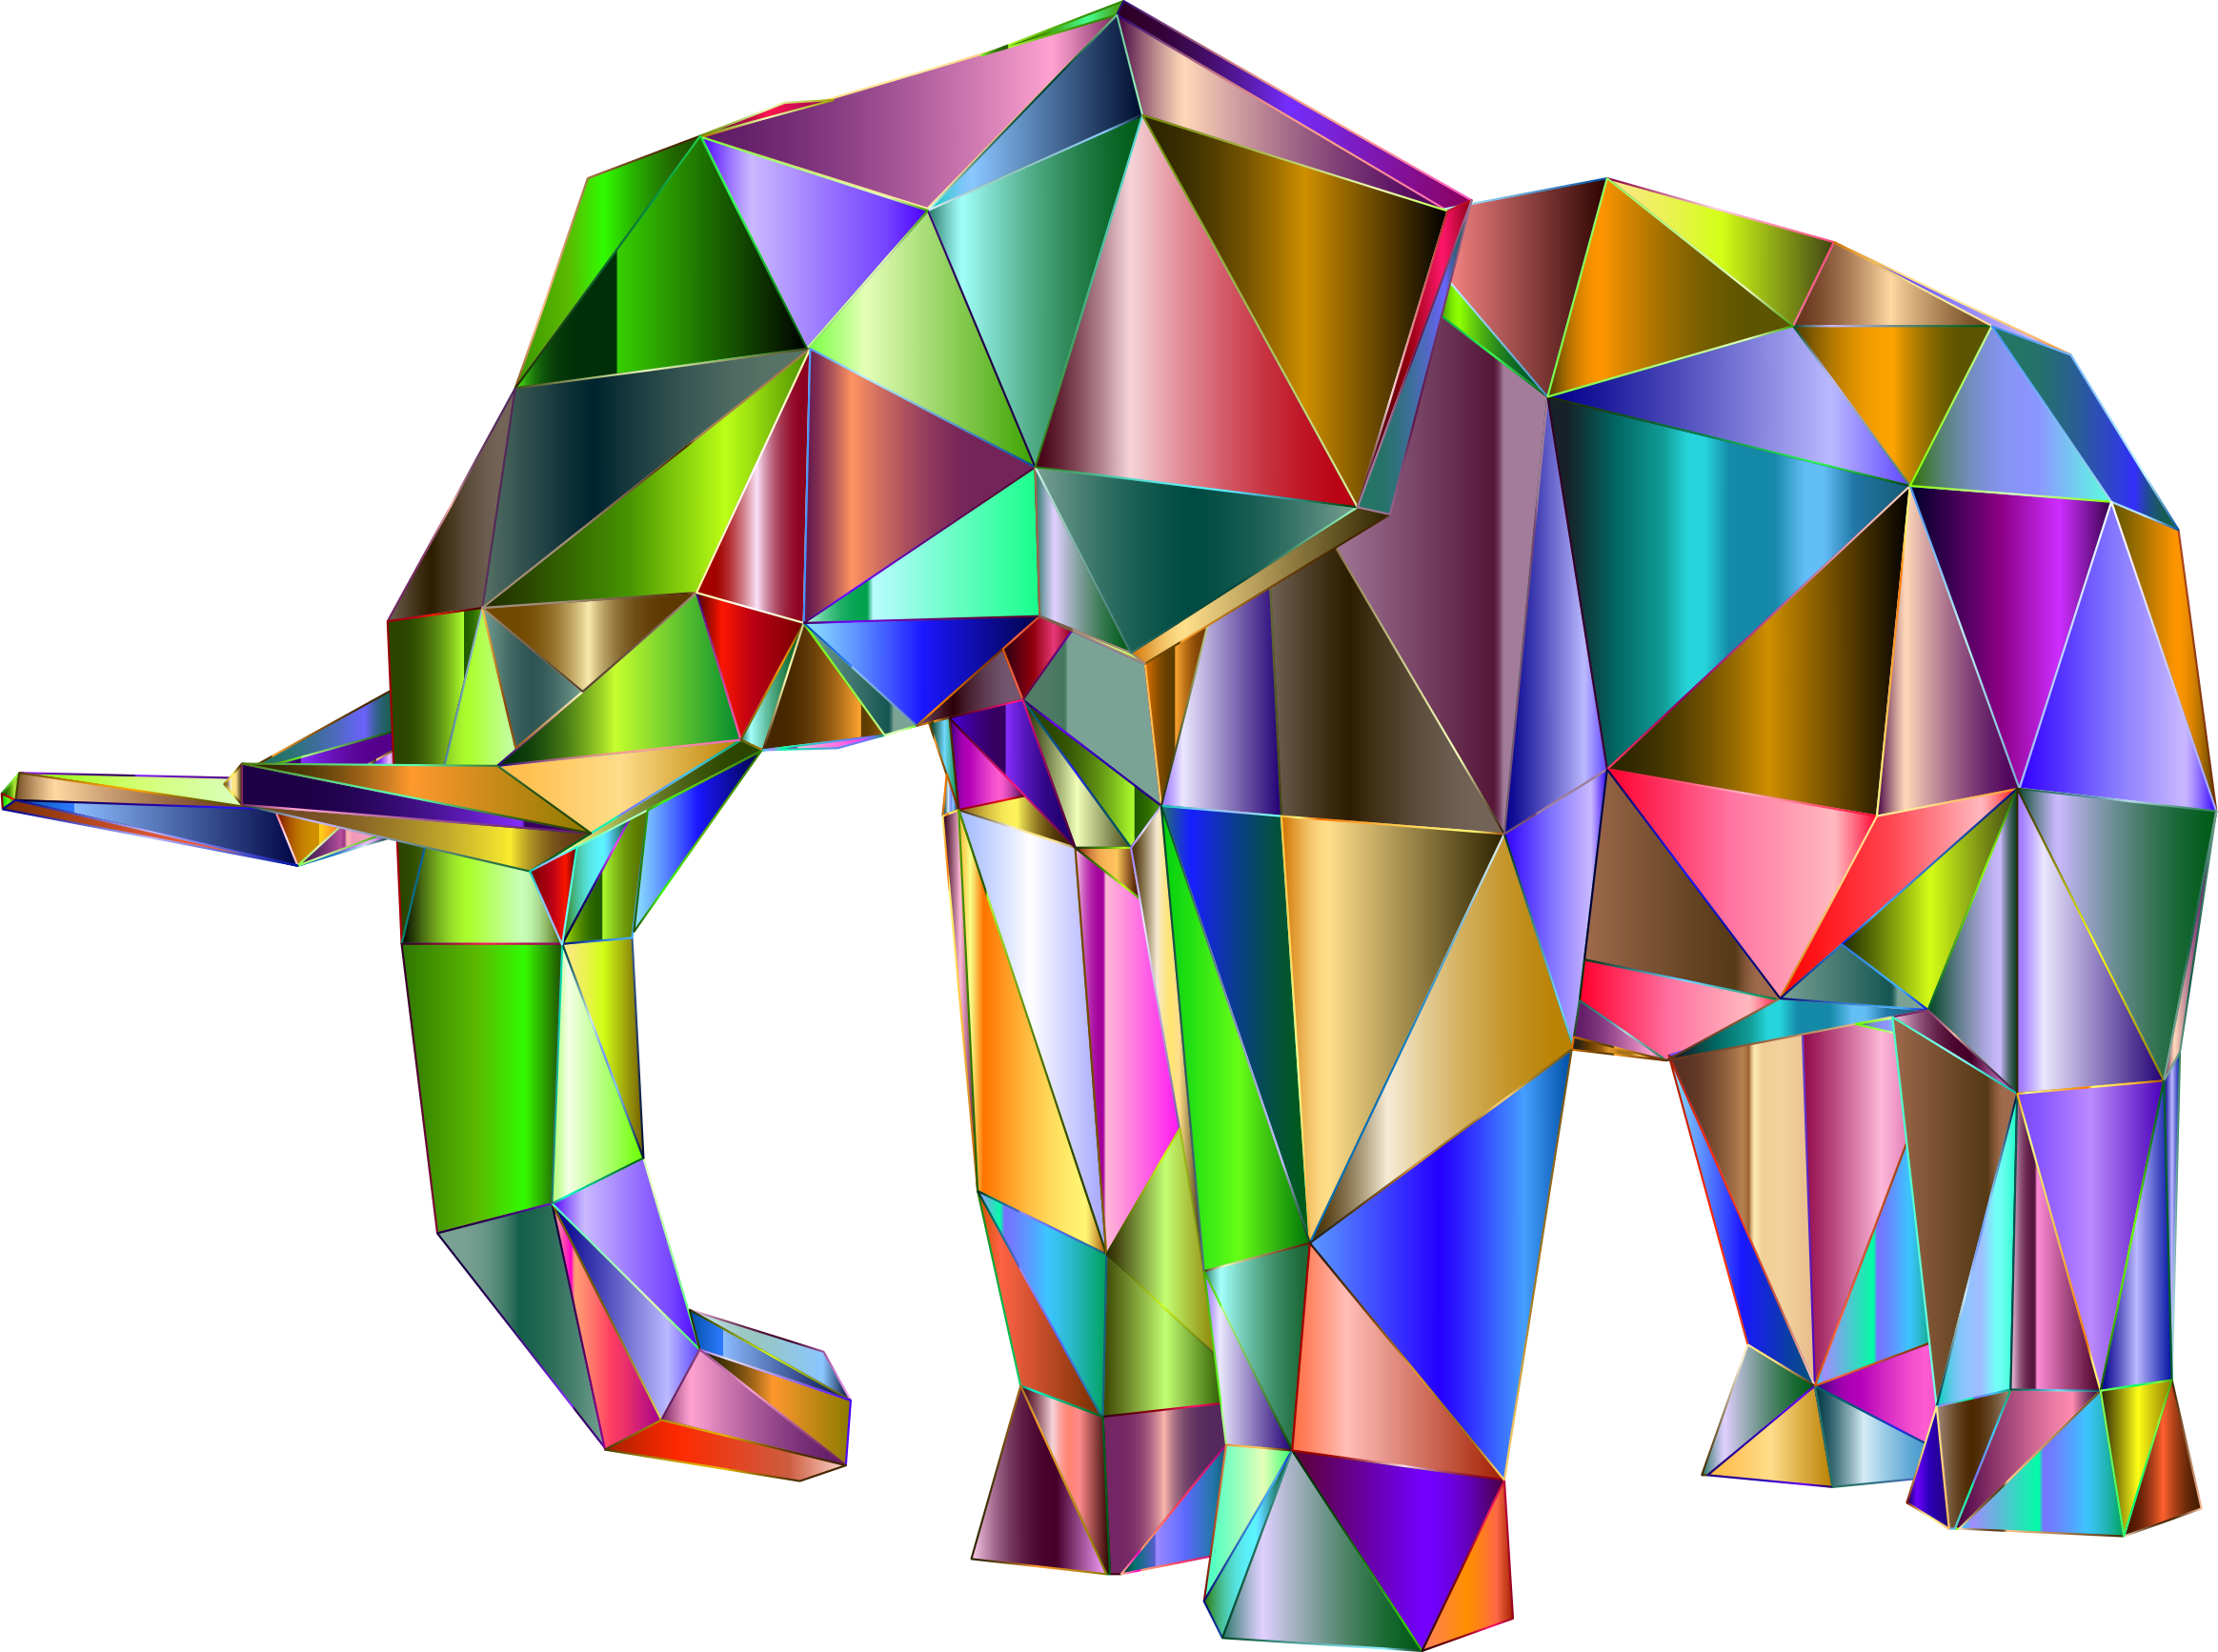 Prismatic Low Poly Elephant 2 by GDJ